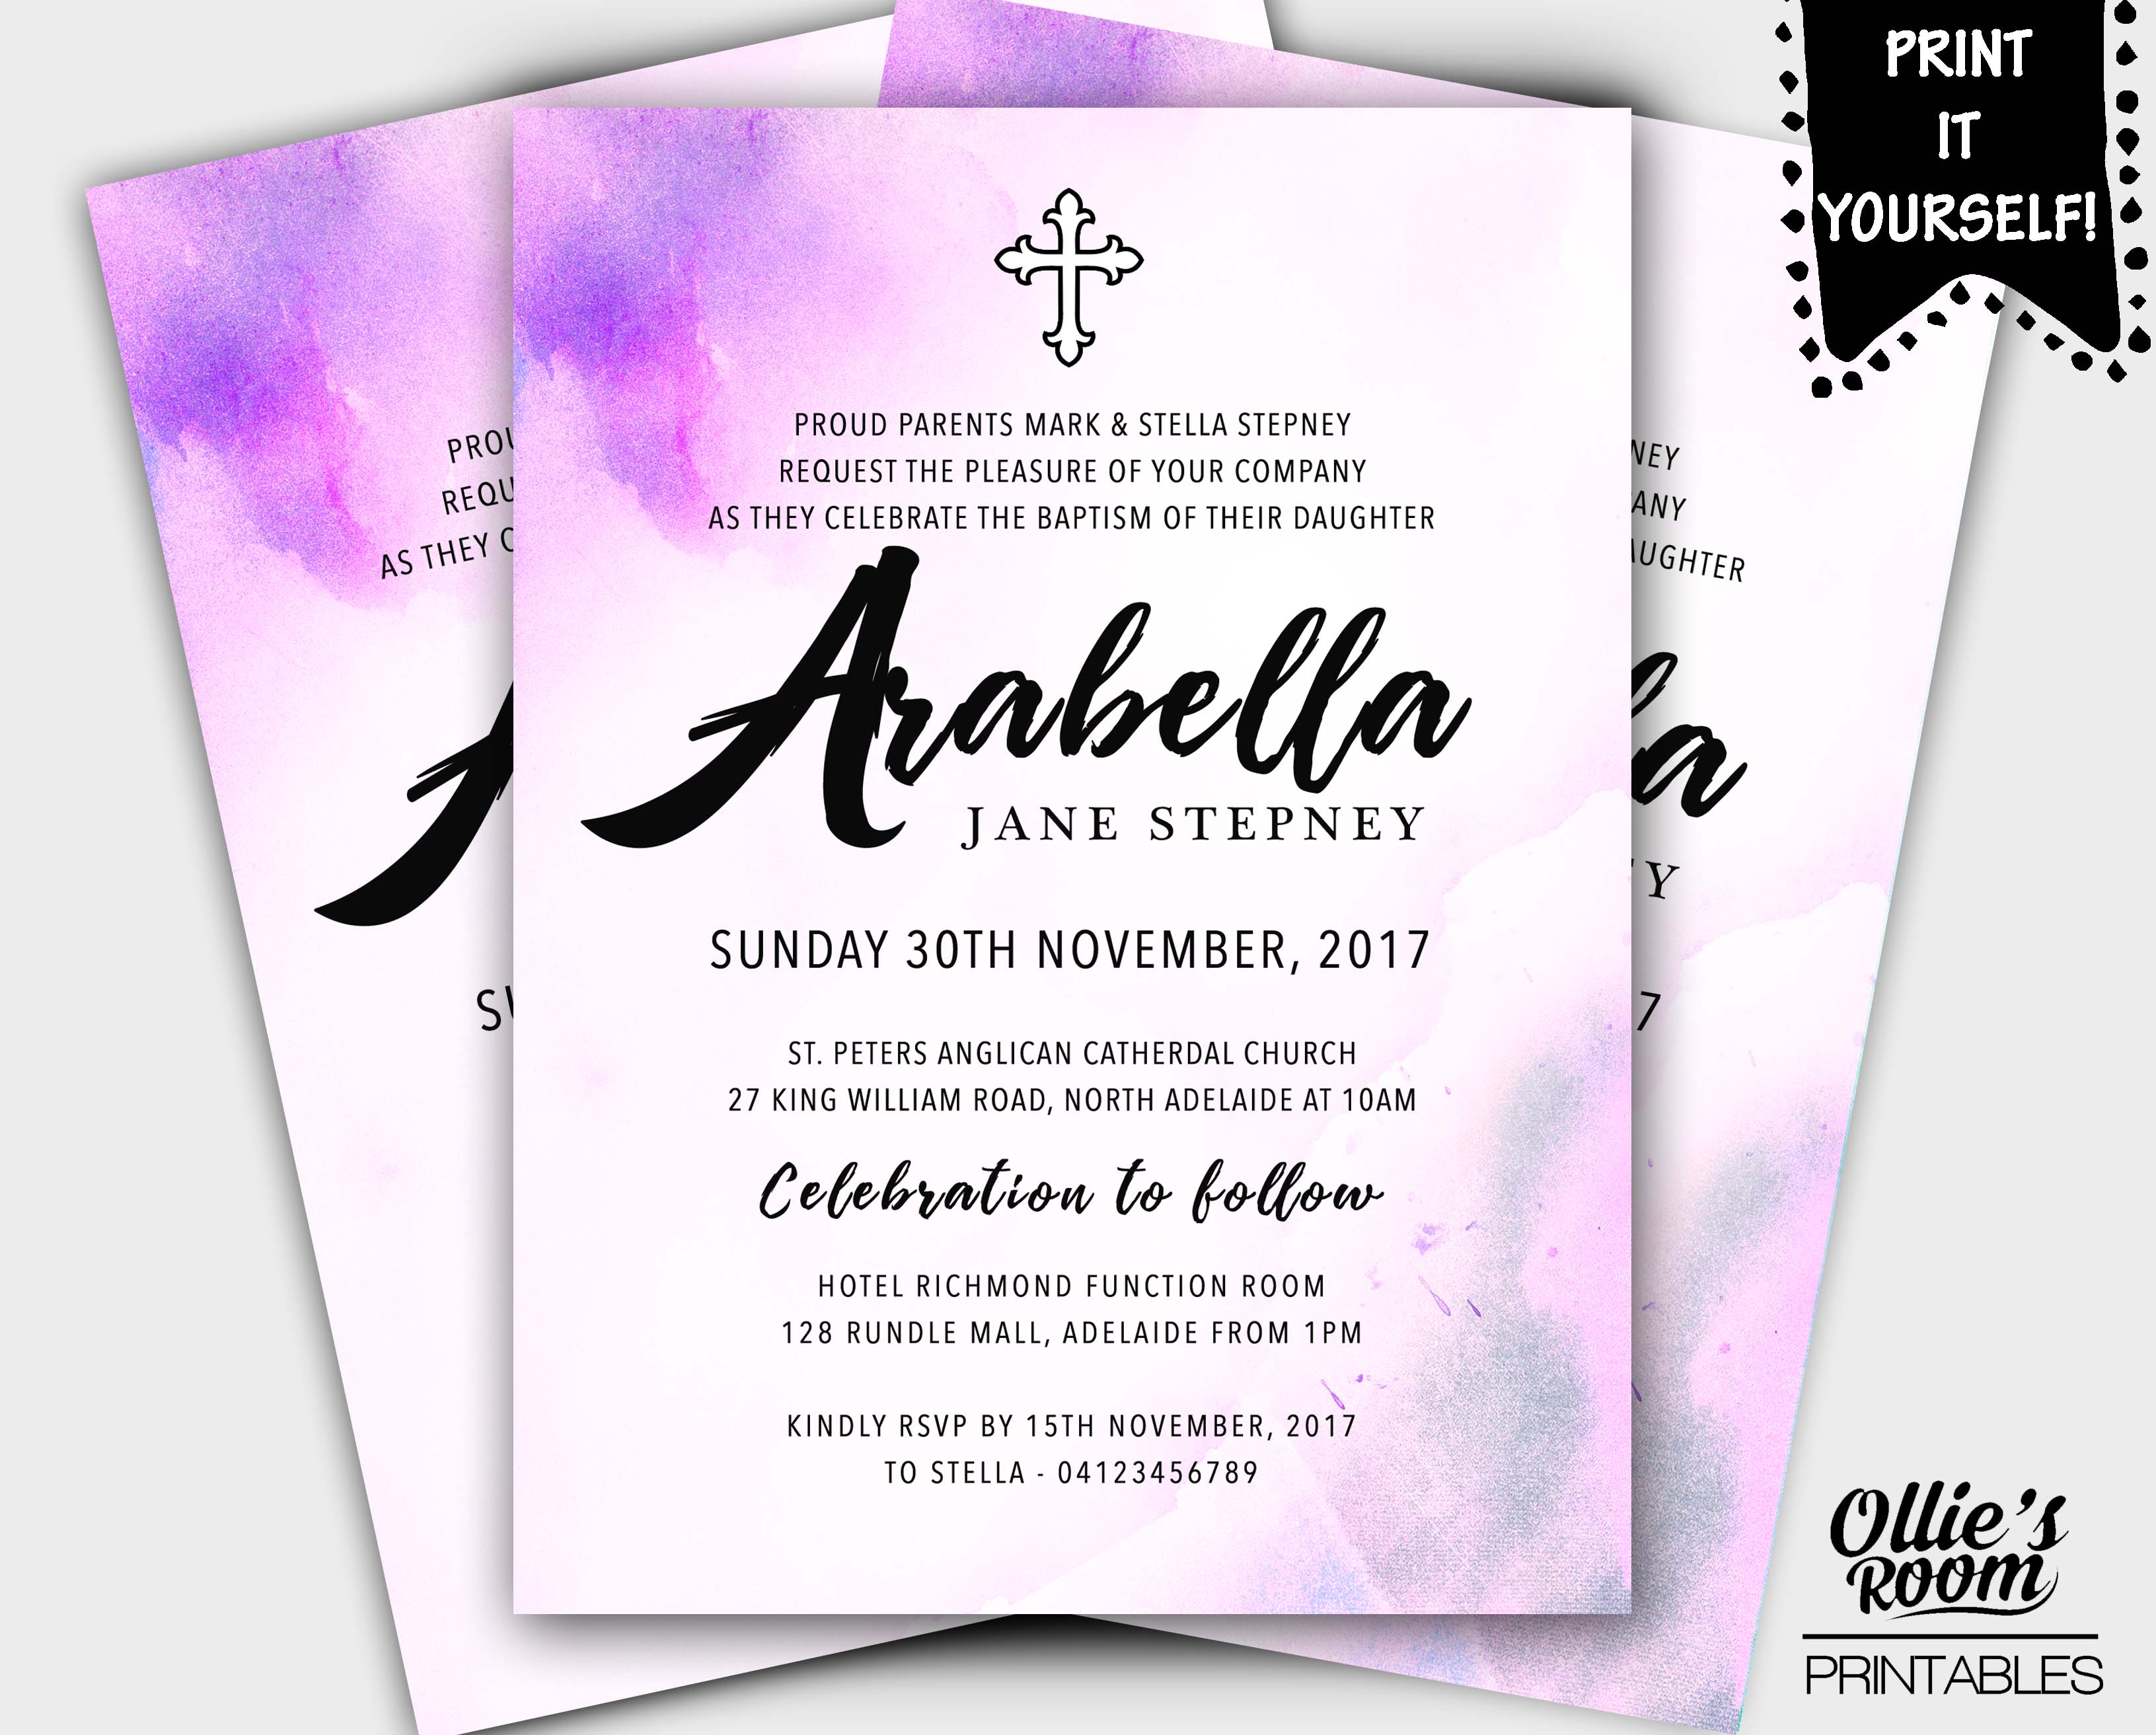 Personalised baptism christening invitation baptismprintable email a friend solutioingenieria Image collections